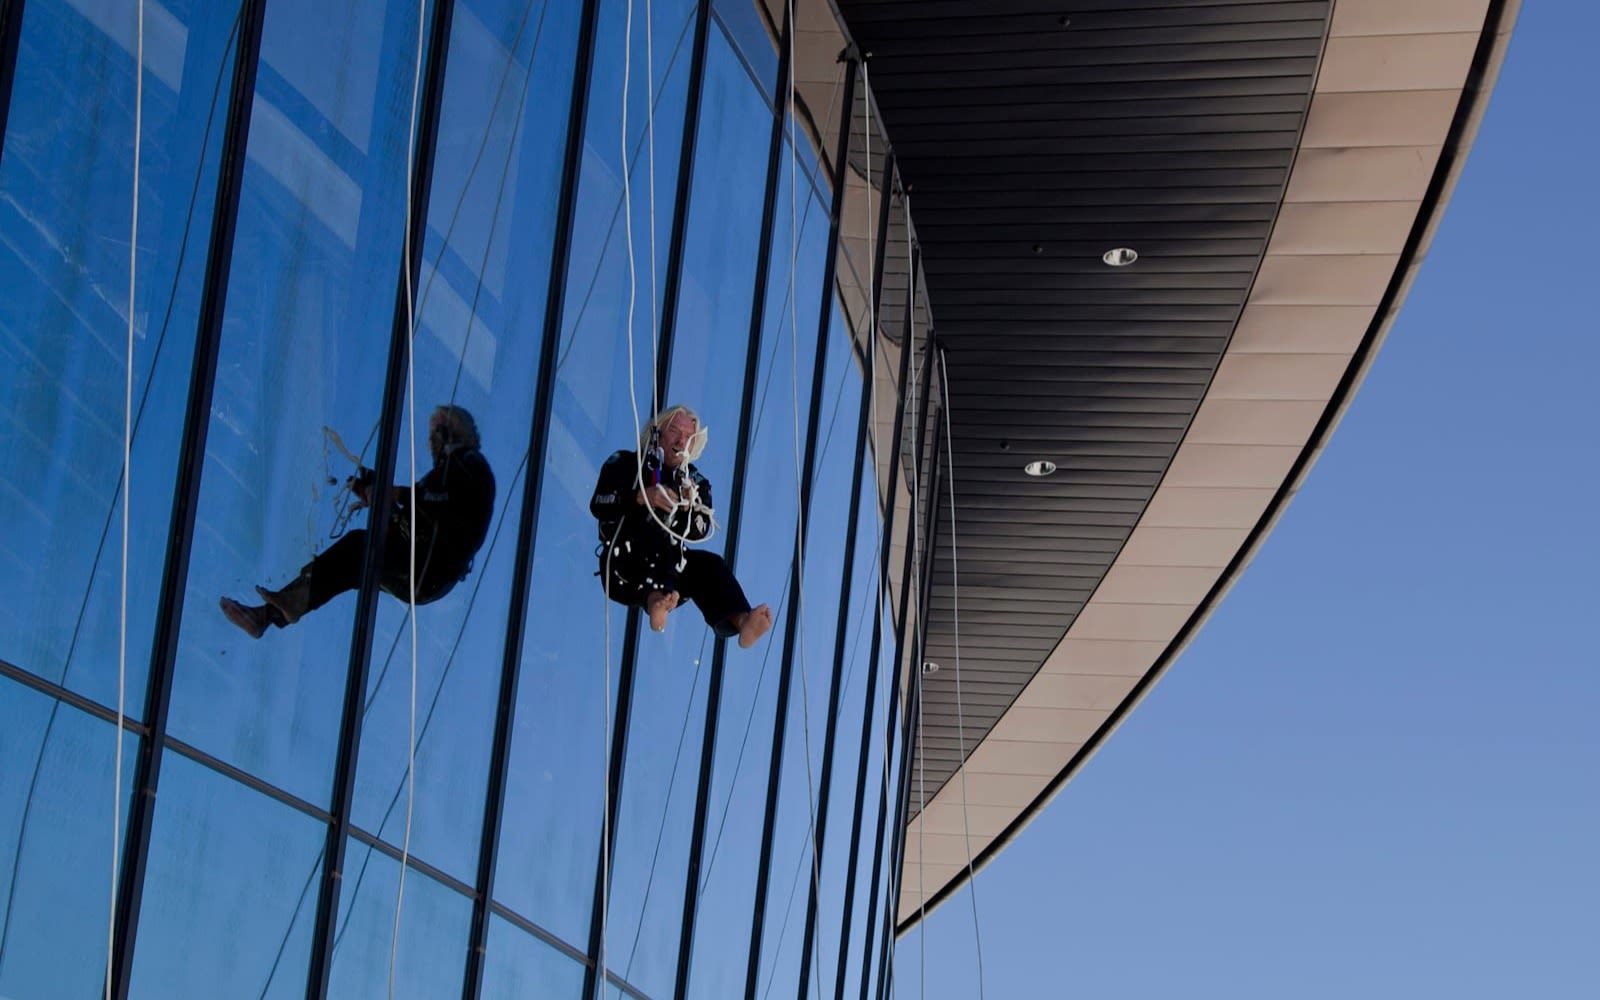 Richard Branson abseiling down a glass building